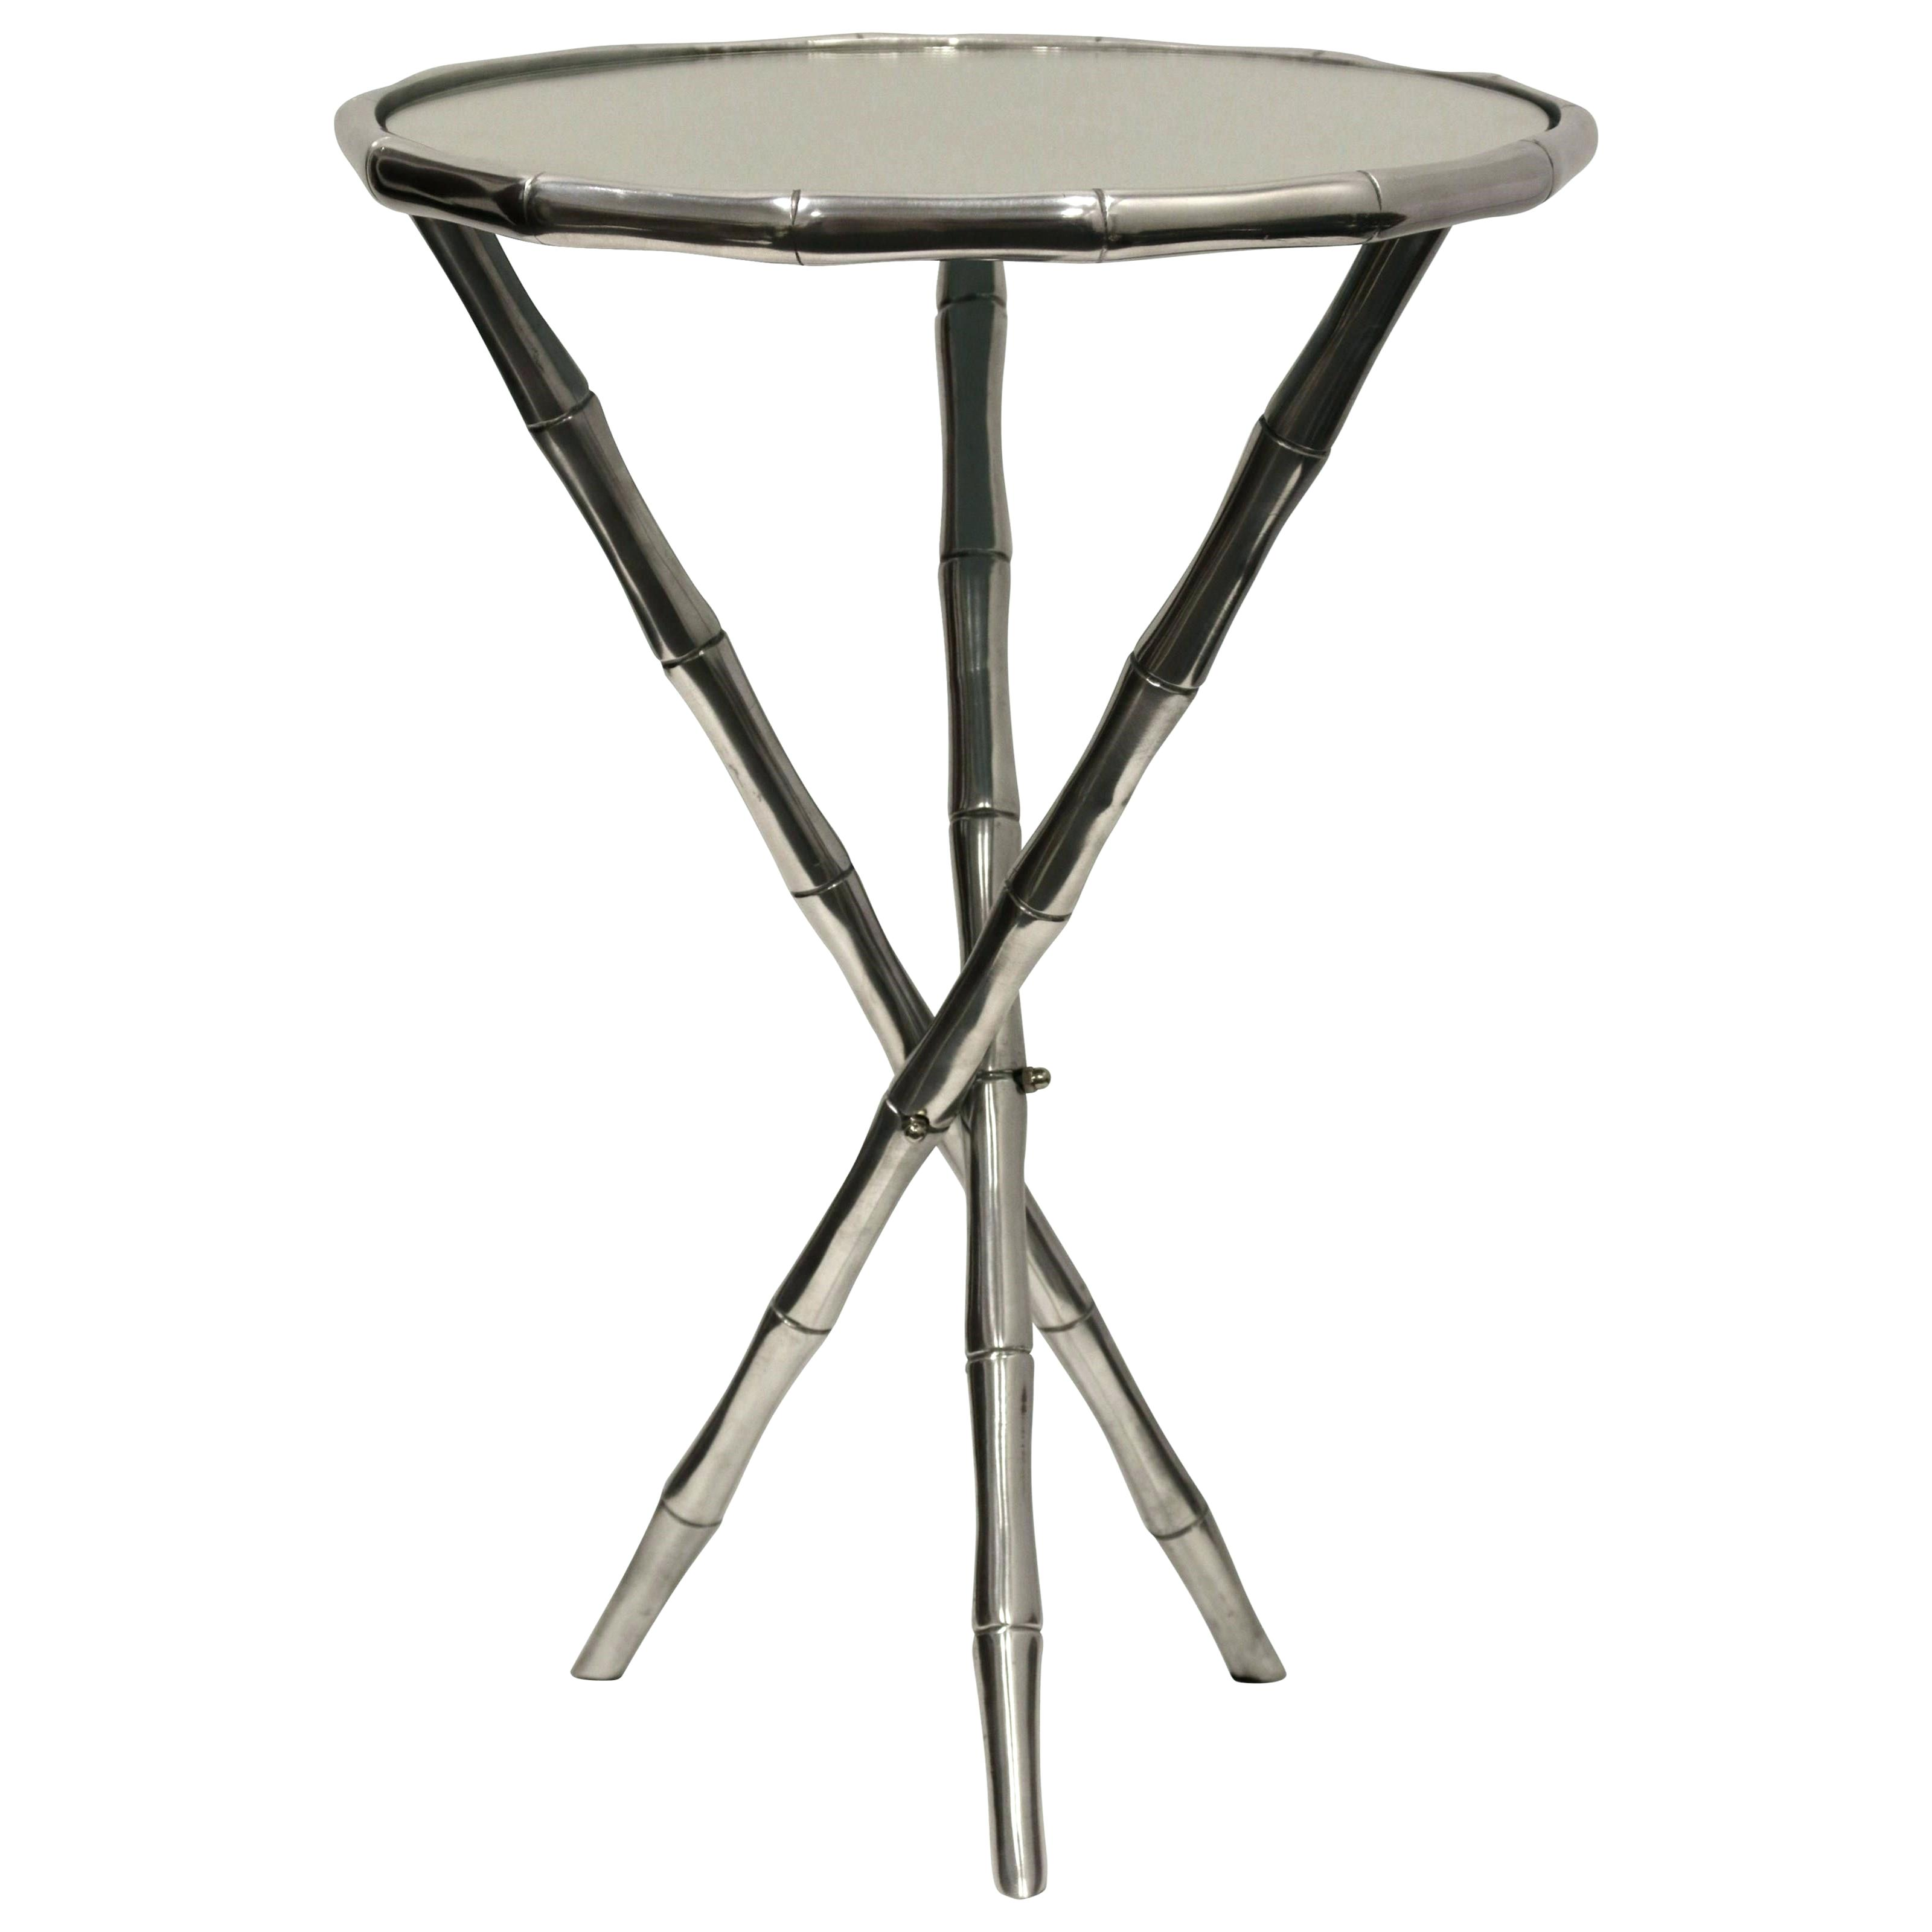 target metal patio accent table outdoor drum with drawers round corranade threshold occasional tables furniture kitchen marvellous roun full size acrylic coffee shelf nursery end